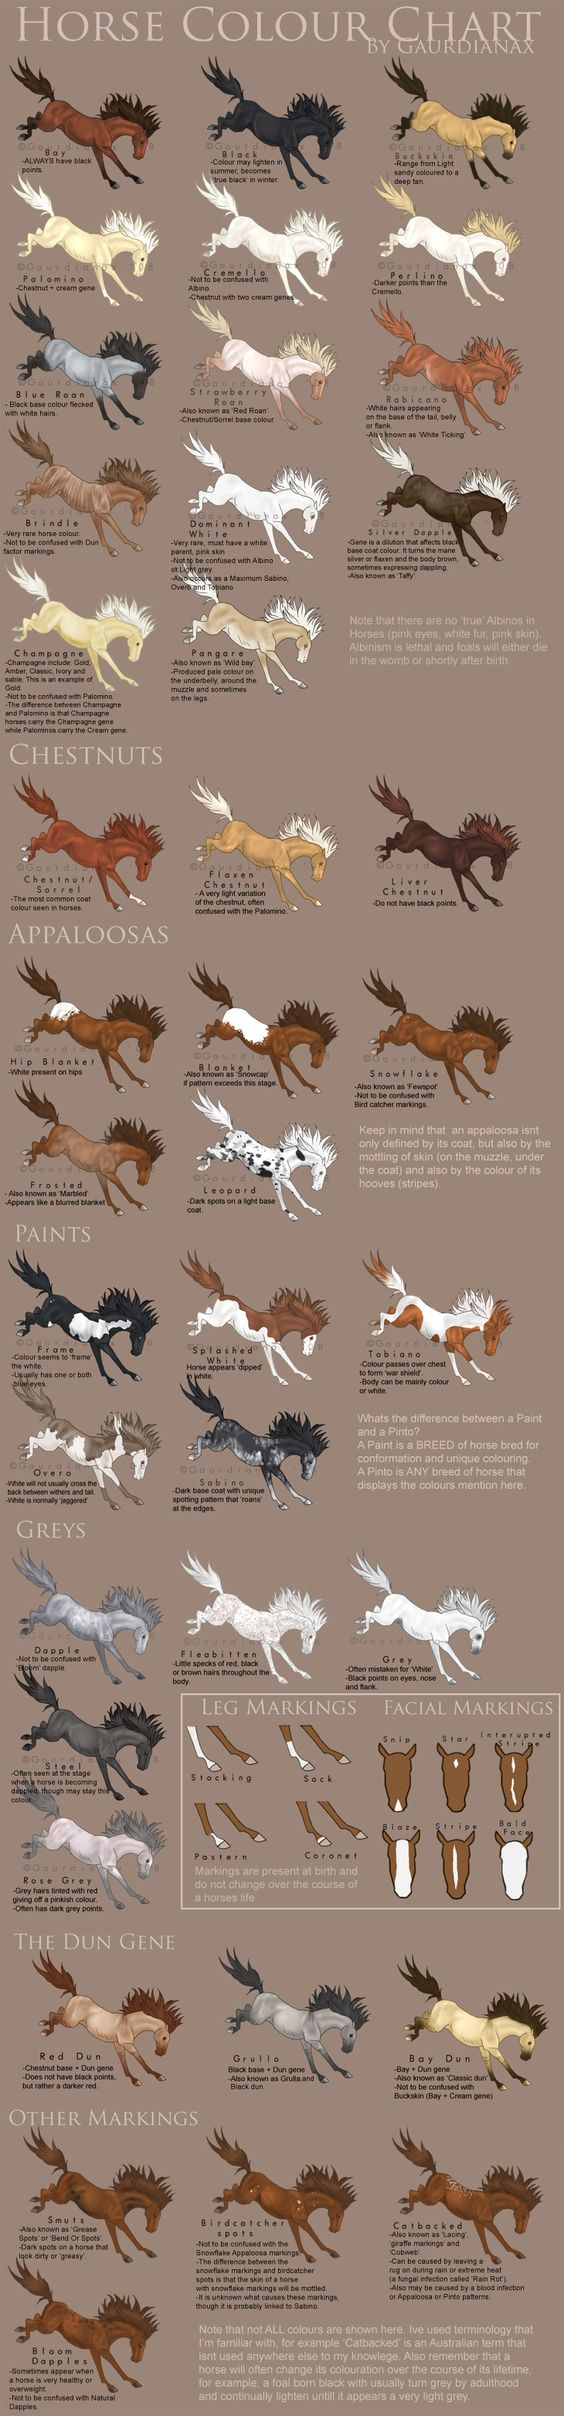 Horse Colour Chart vs 2 by Gaurdianax on deviantART